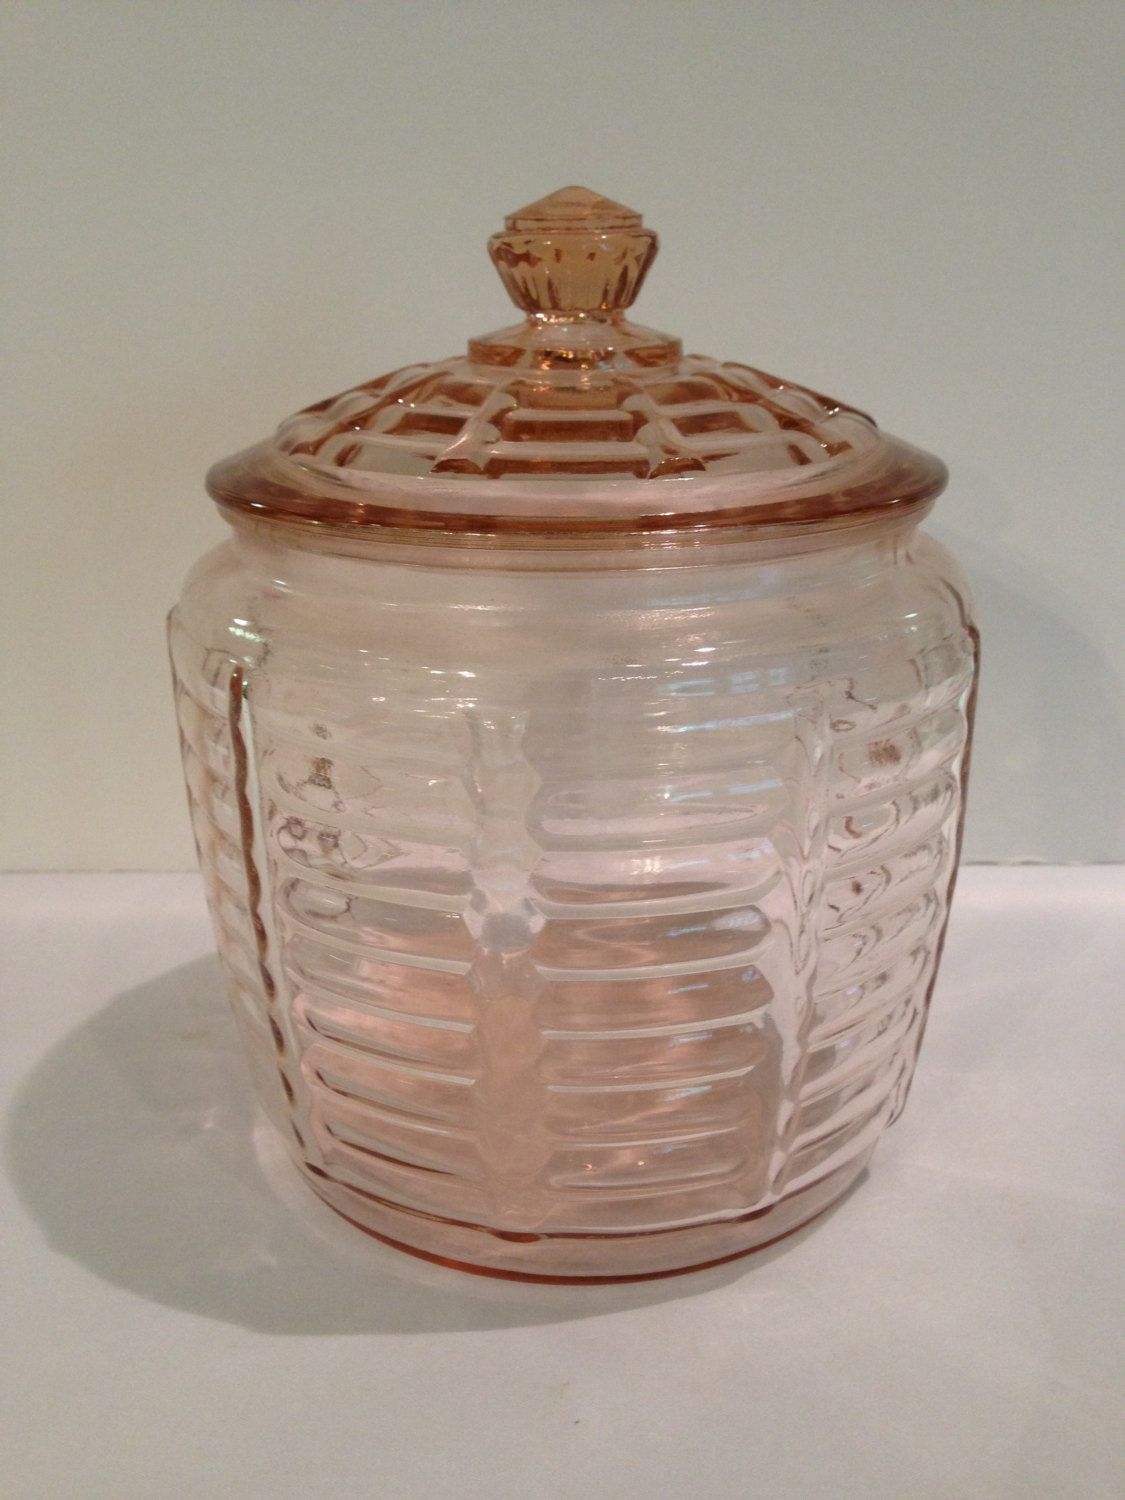 Huge Glass Cookie Jar Anchor Hocking Pink Depression Glass Biscuit Cookie Jar